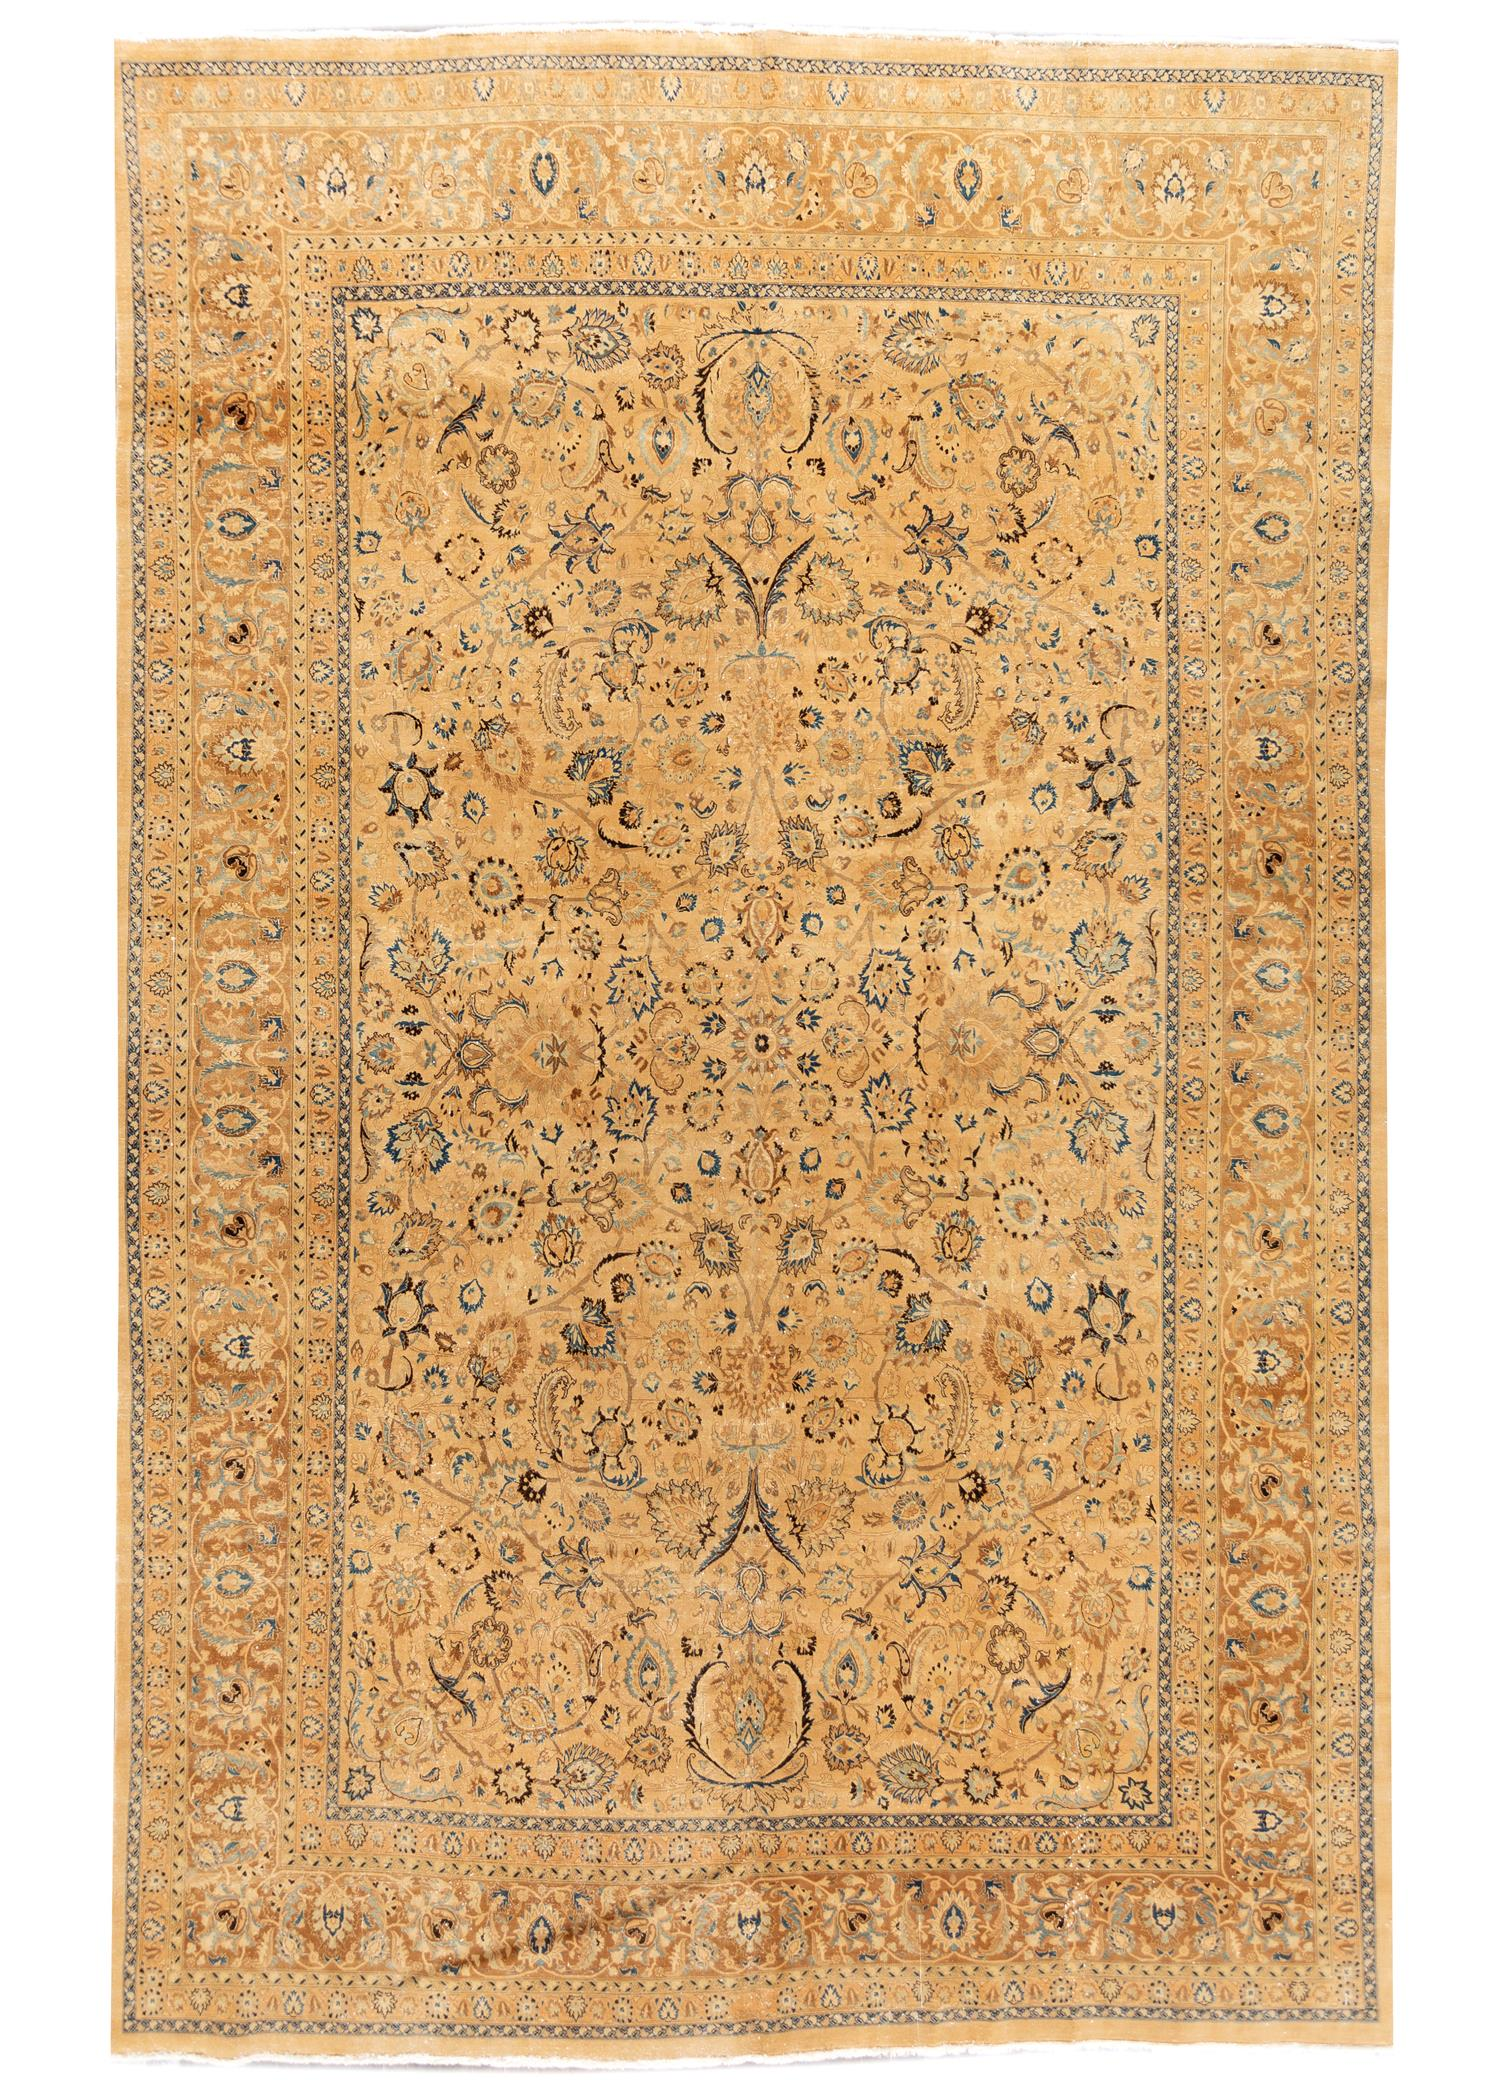 Early 20th Century Antique Tabriz Rug, 11x17